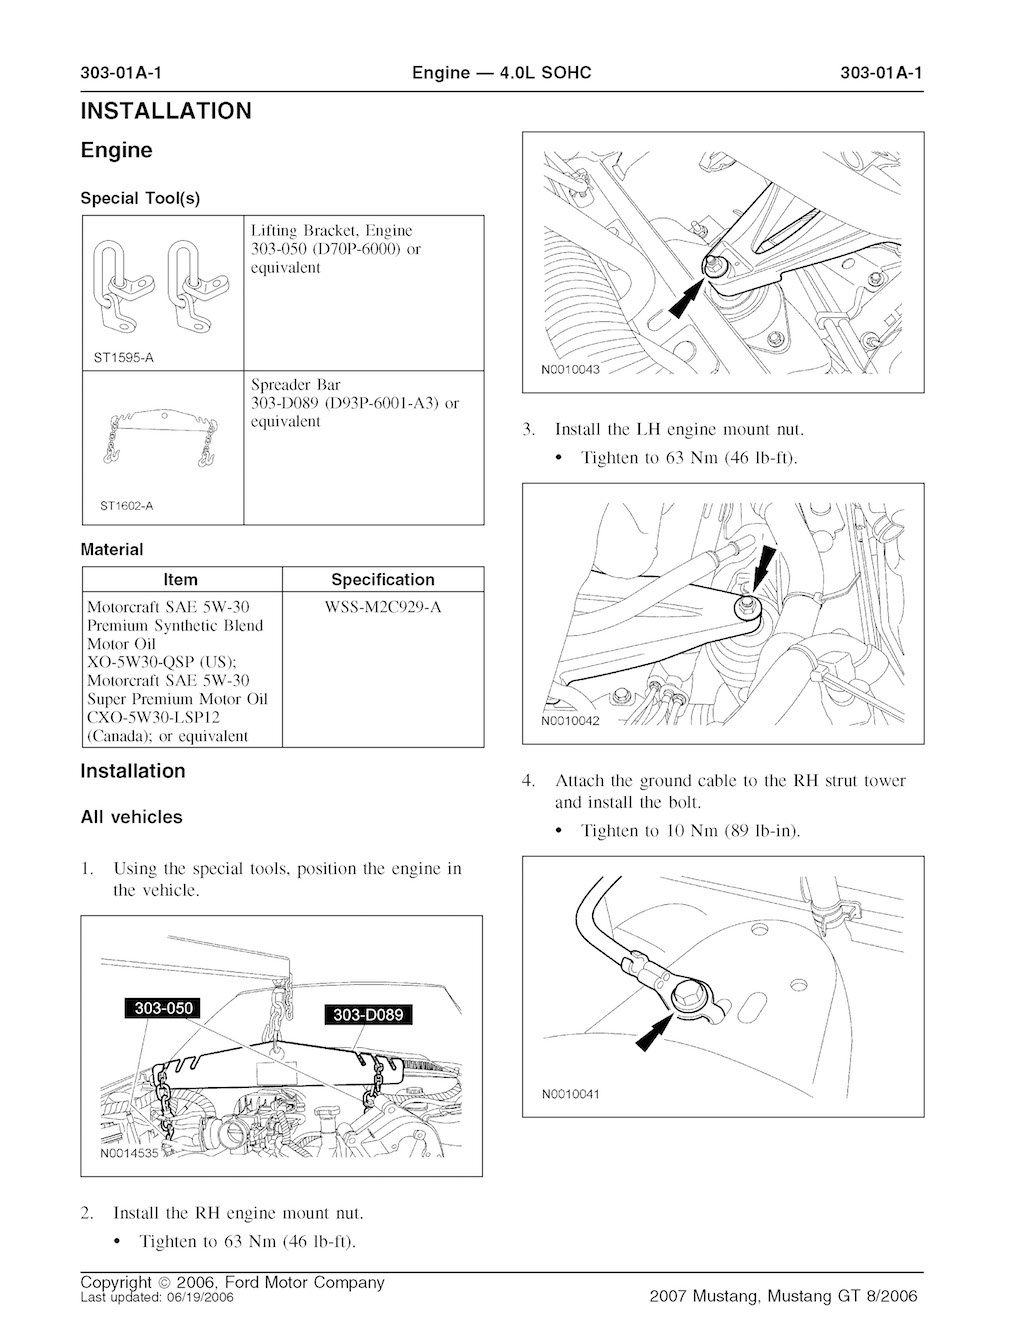 2007 Mustang Manual Pdf Kawasaki Fd750 Regulator Wiring Diagram Array Ford Gt Oem Service And Repair P Rh Sellfy Com